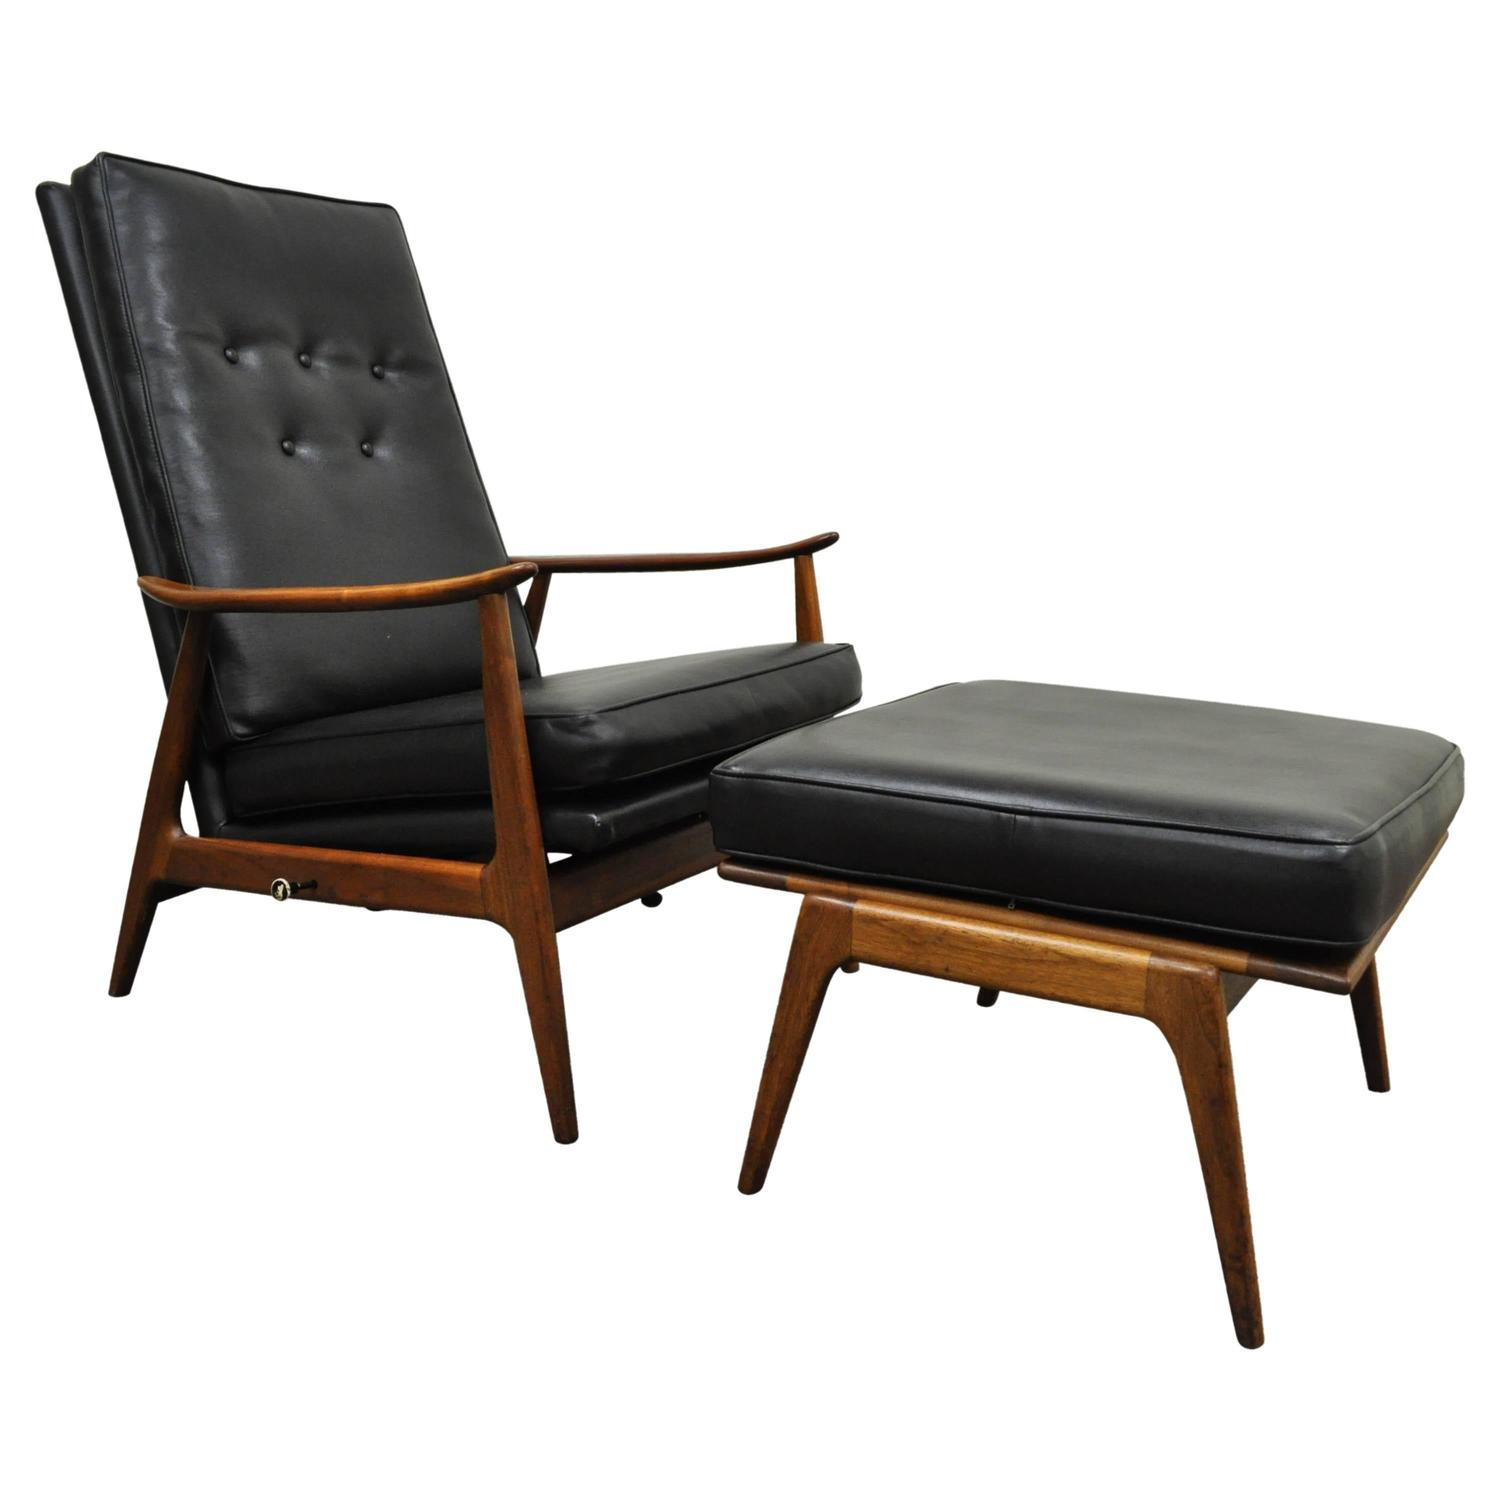 Milo Baughman for James Inc Thayer Coggin Walnut Recliner Lounge Chair and Ottoman For Sale at 1stdibs  sc 1 st  1stDibs & Milo Baughman for James Inc Thayer Coggin Walnut Recliner Lounge ... islam-shia.org